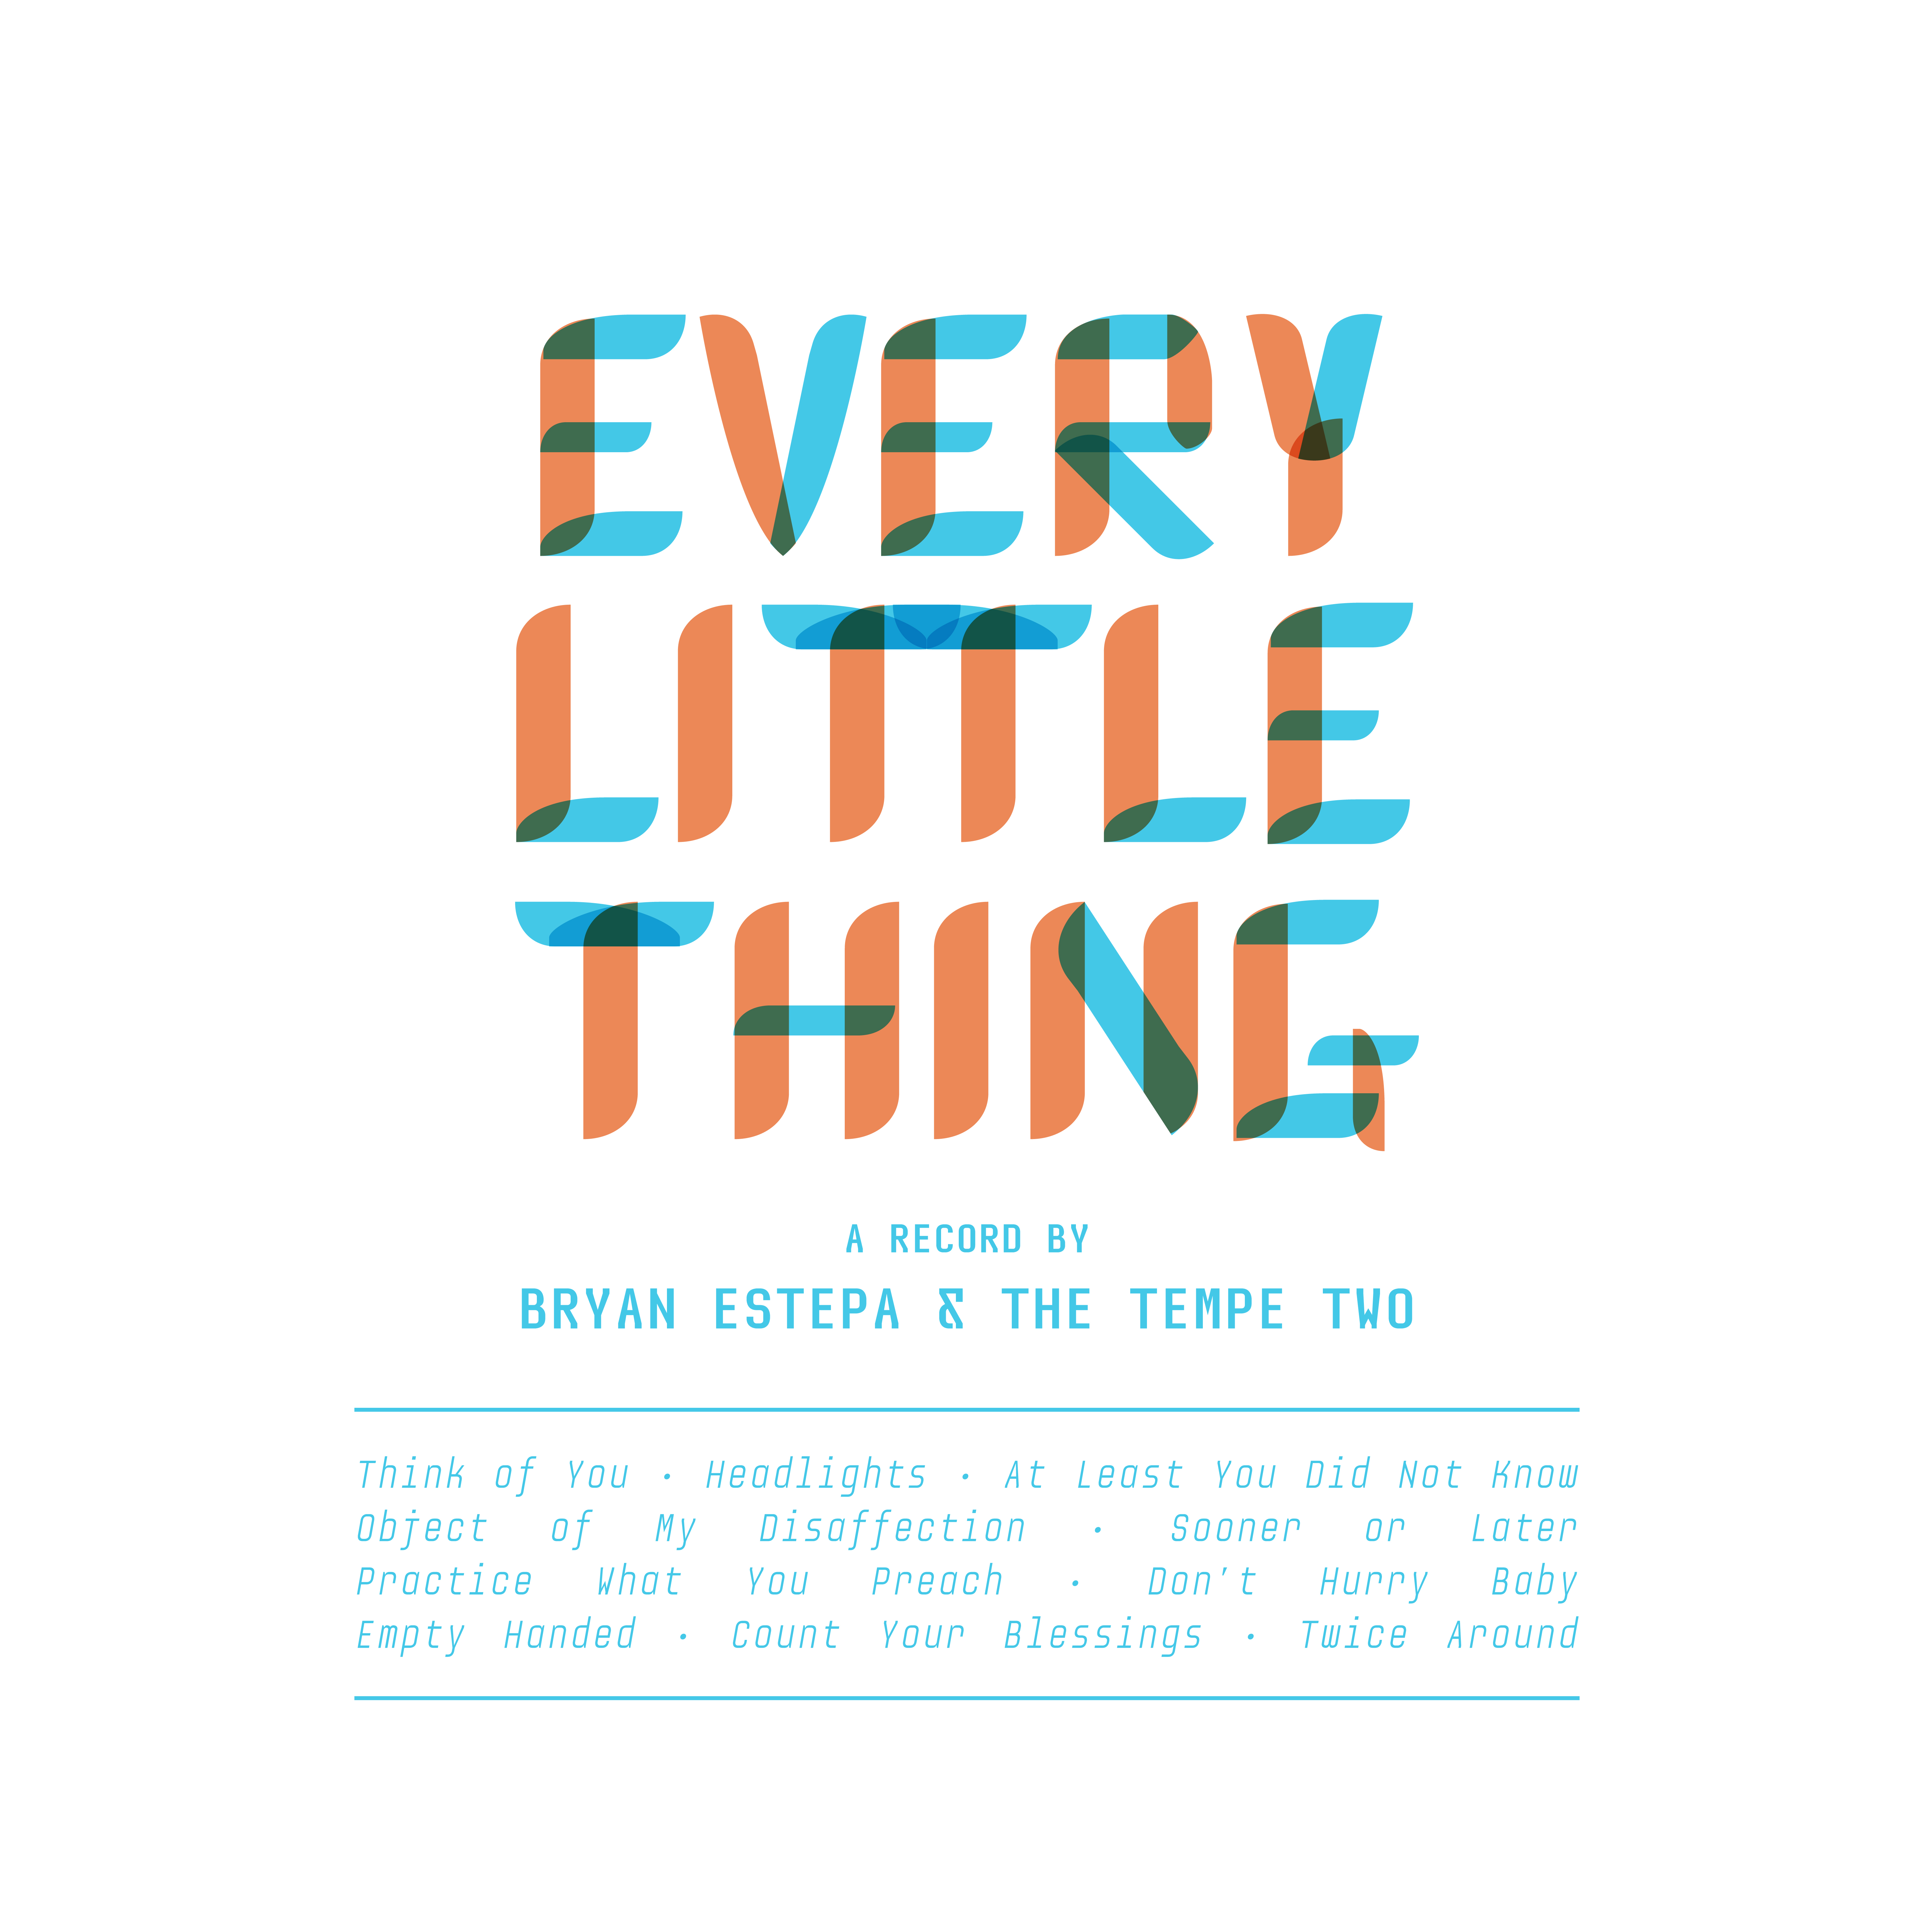 Every Little Thing - Bryan Estepa & The Tempe Two (Album)